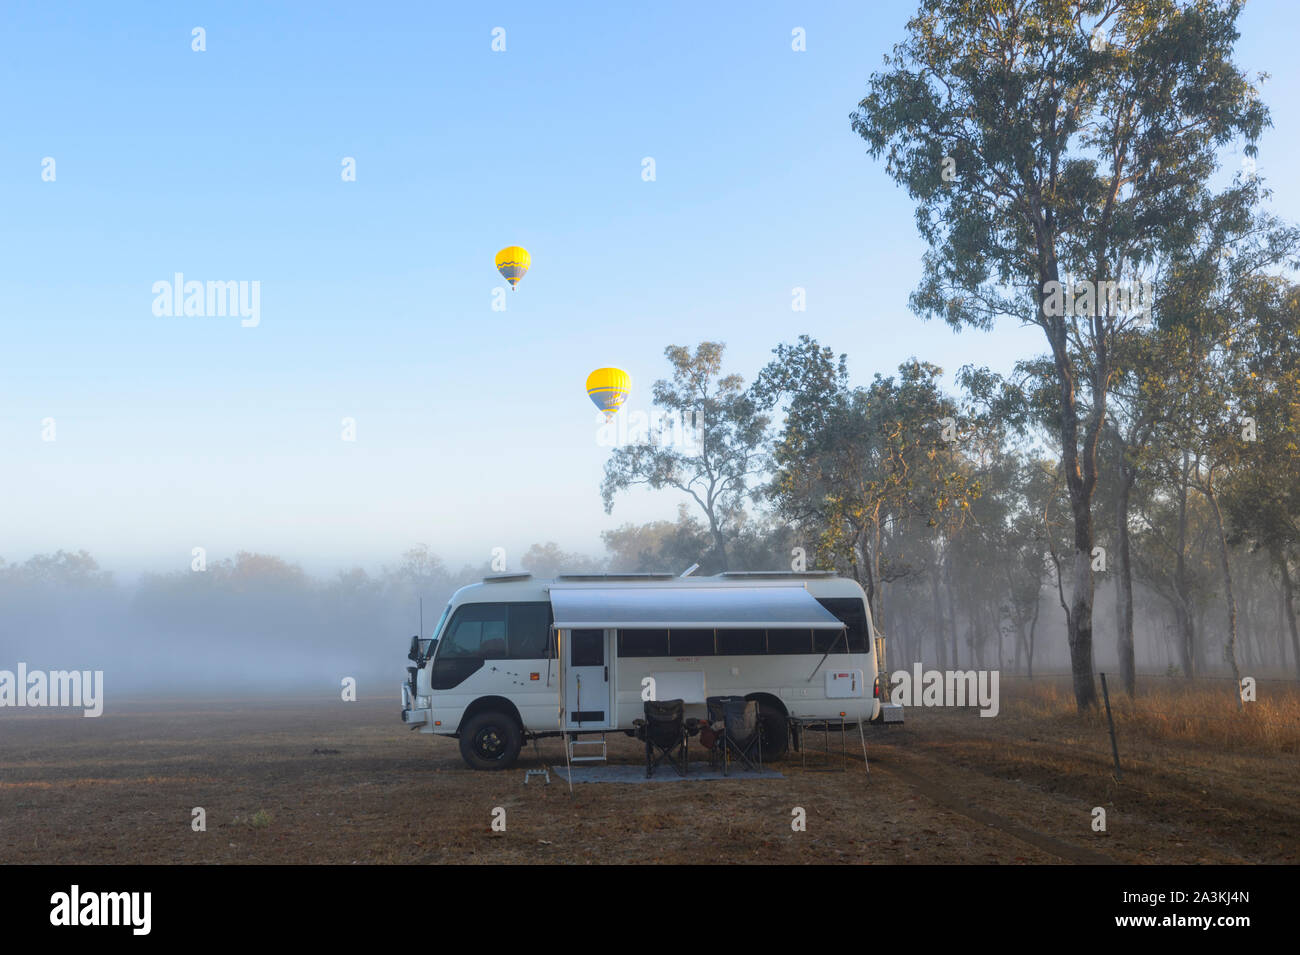 A Toyota Coaster motorhome camped at sunrise in the bush with yellow hot air balloons flying overhead, Mareeba, Queensland, QLD, Australia Stock Photo